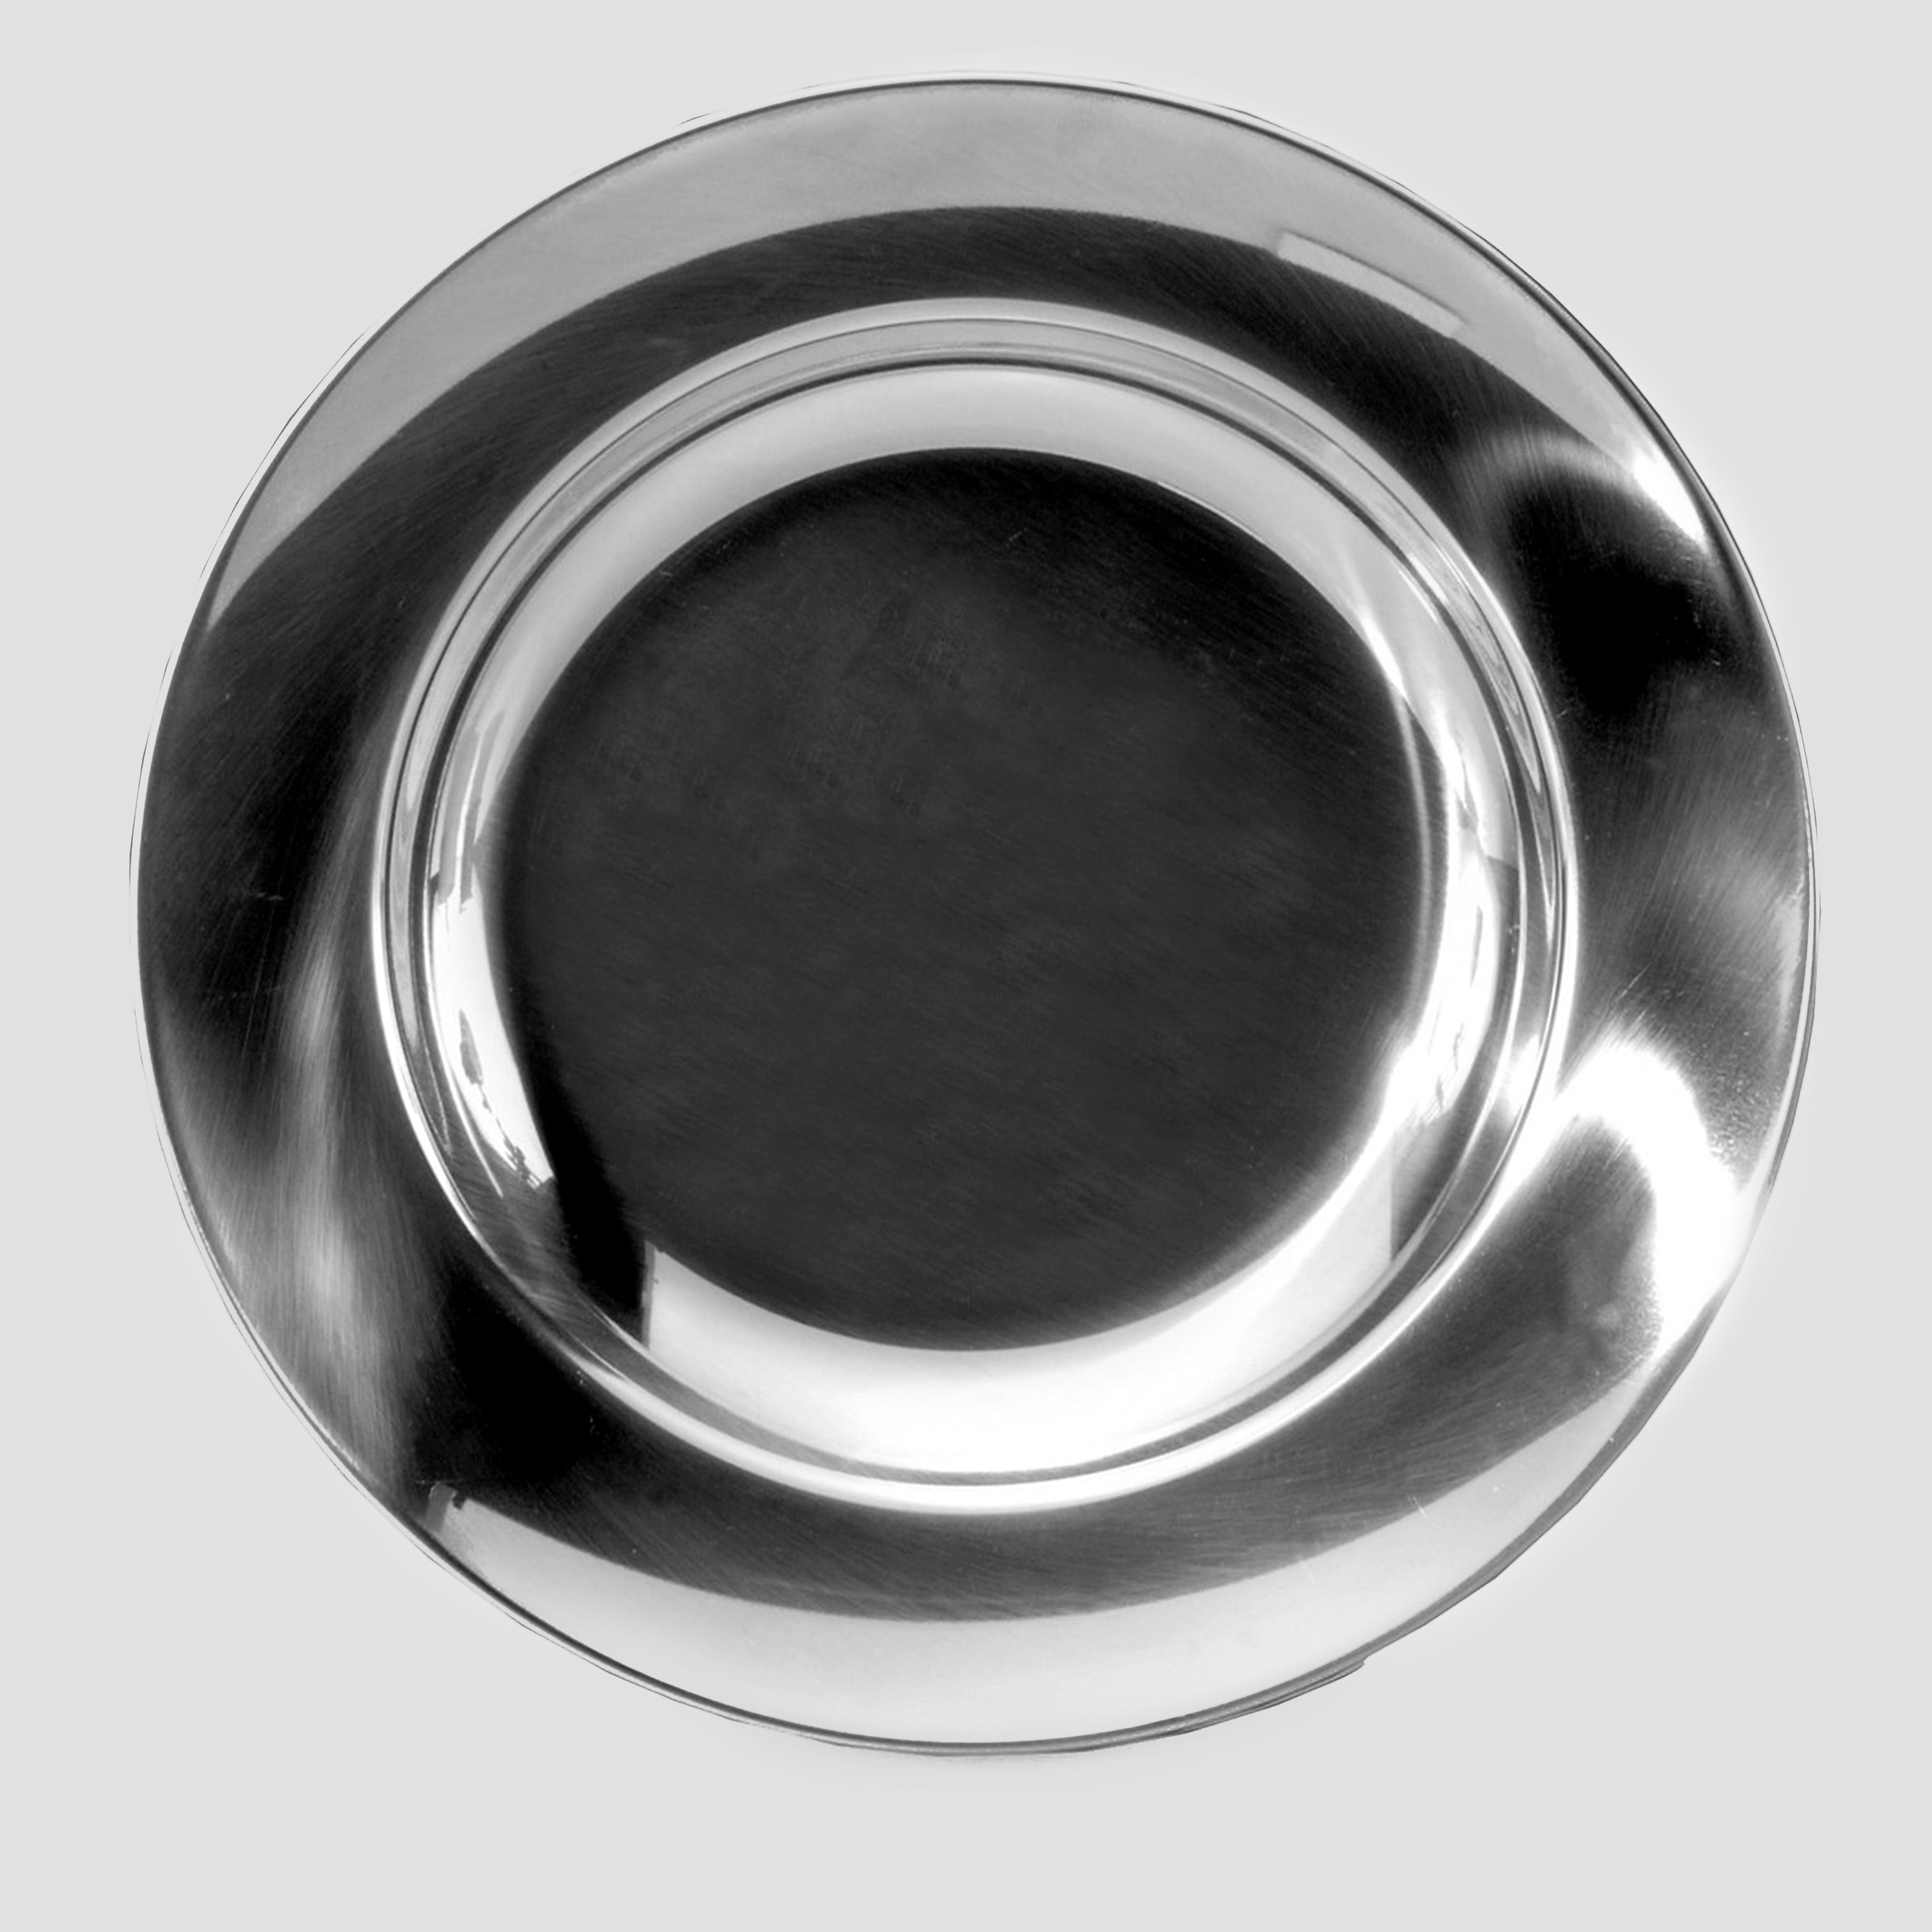 Life Venture Stainless Steel Plate